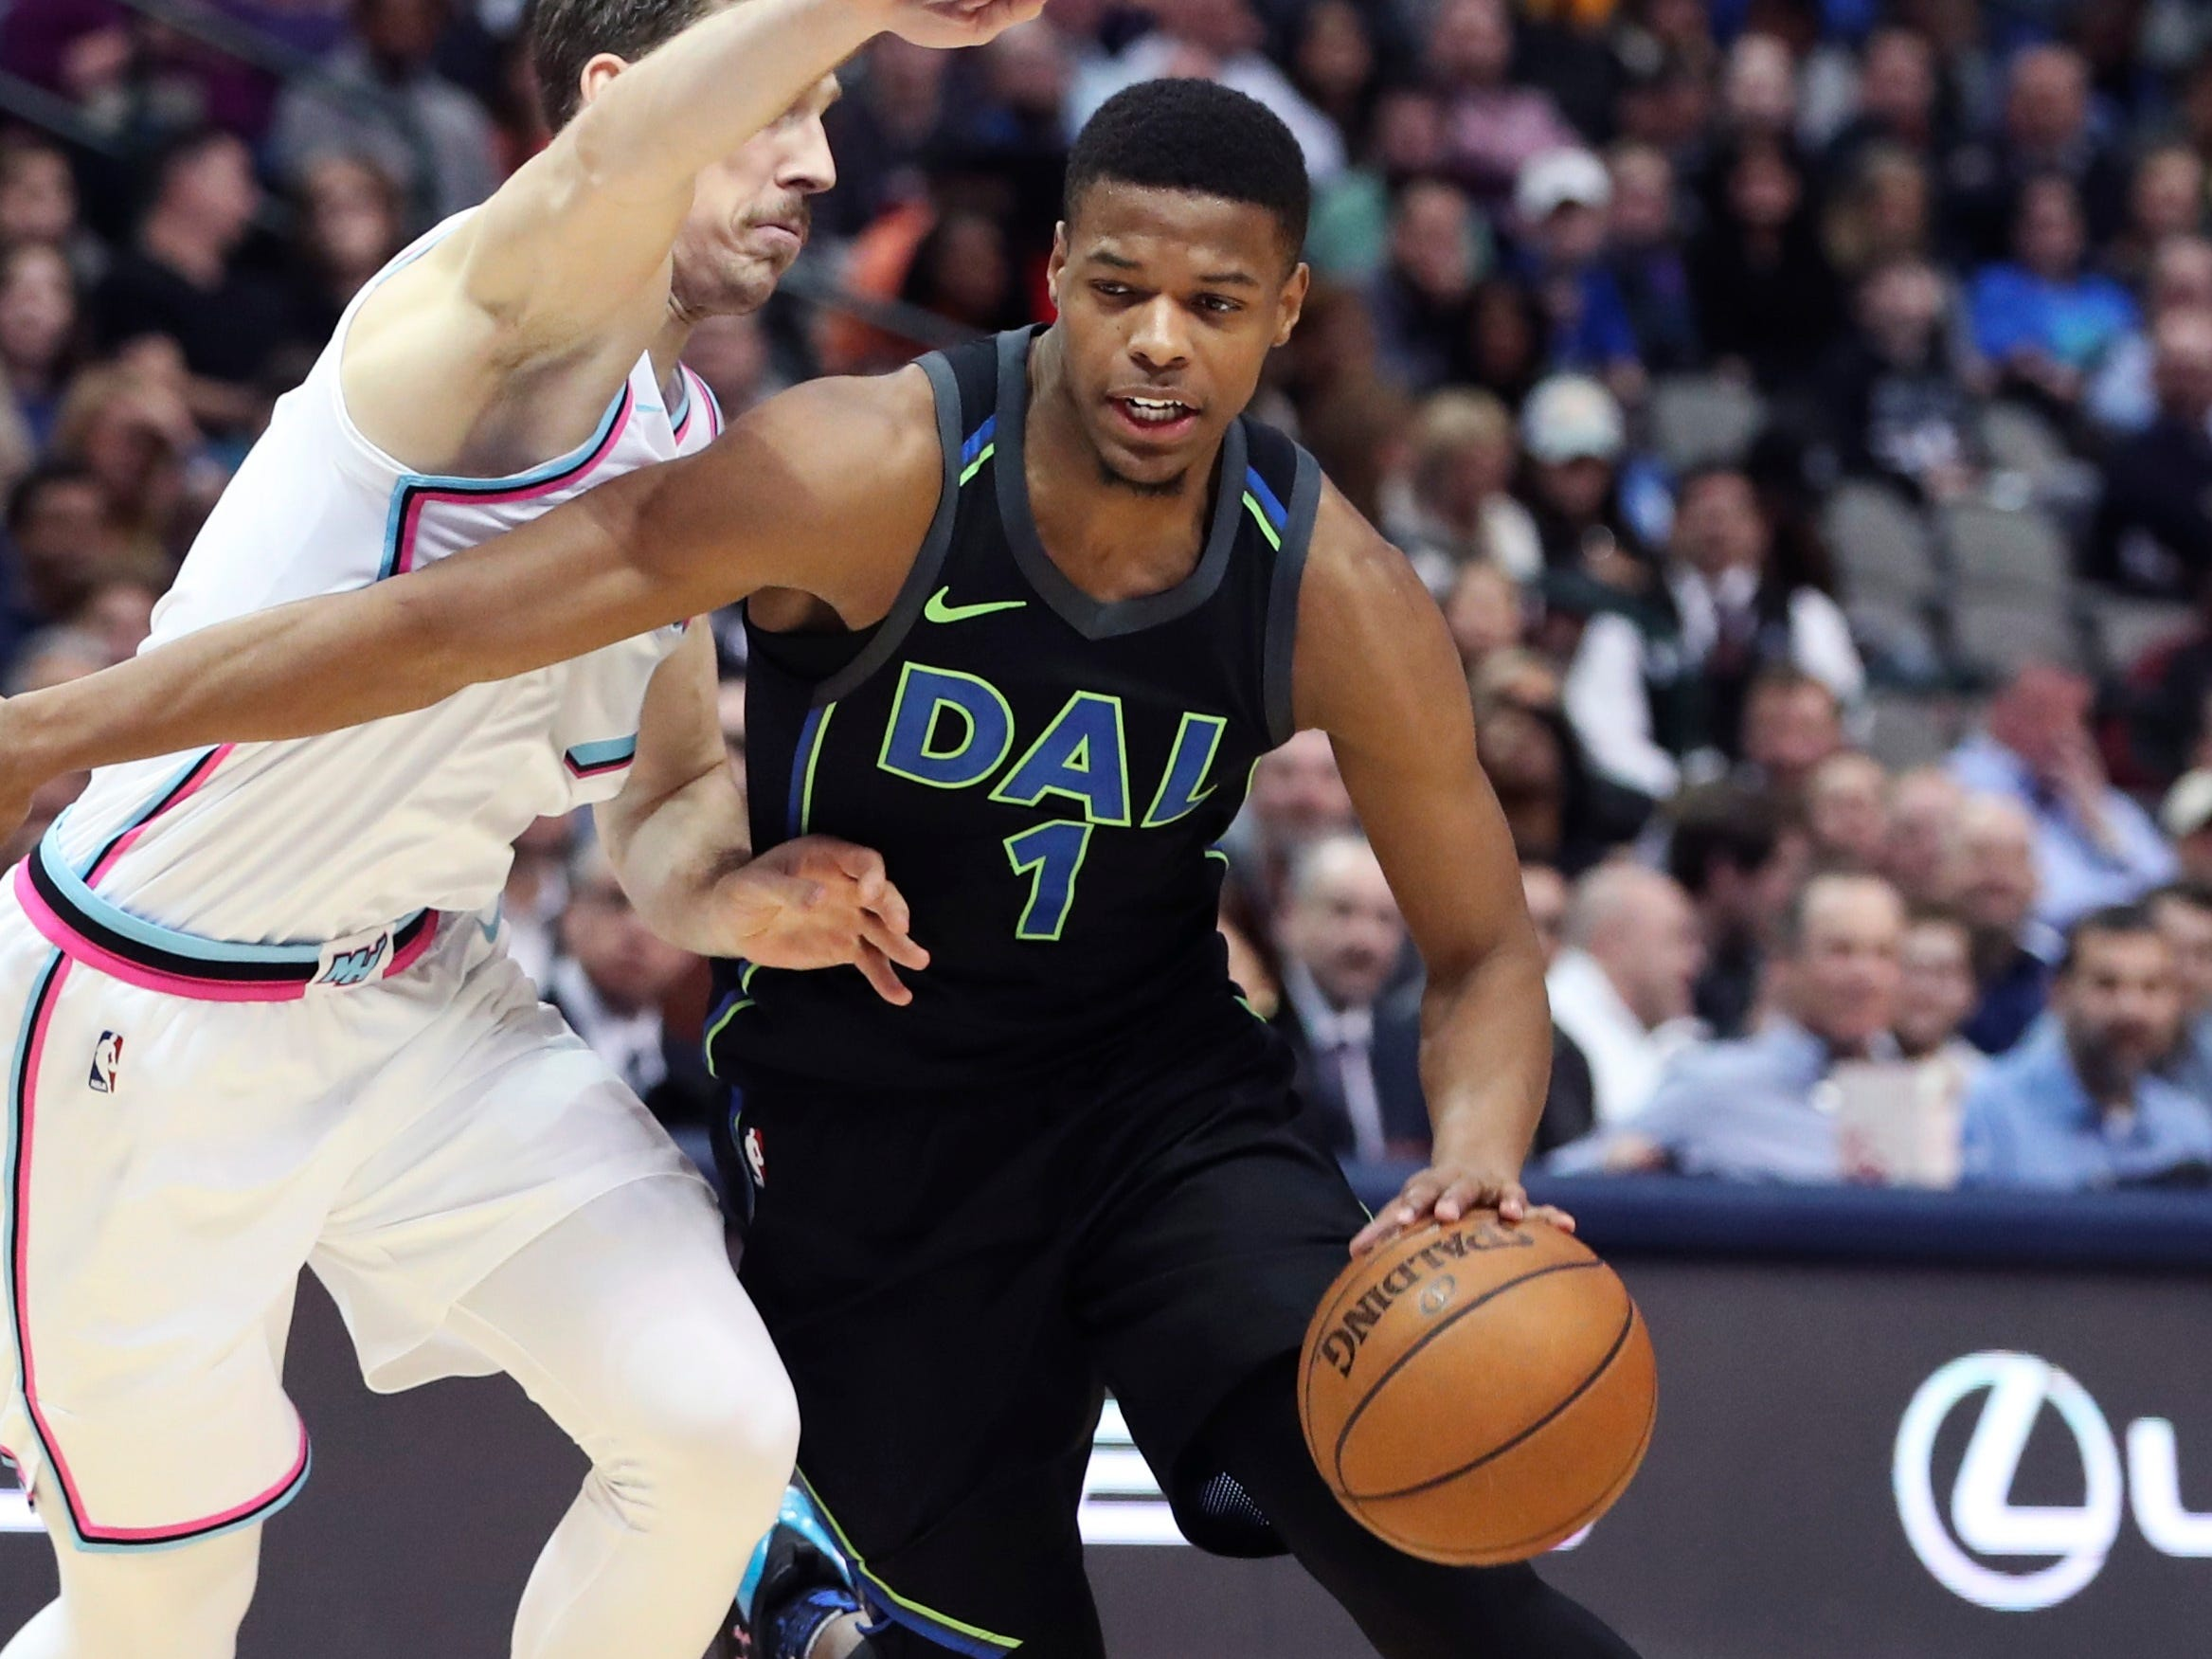 Dennis Smith Jr., Dallas Mavericks — 21 (born 11/25/1997)